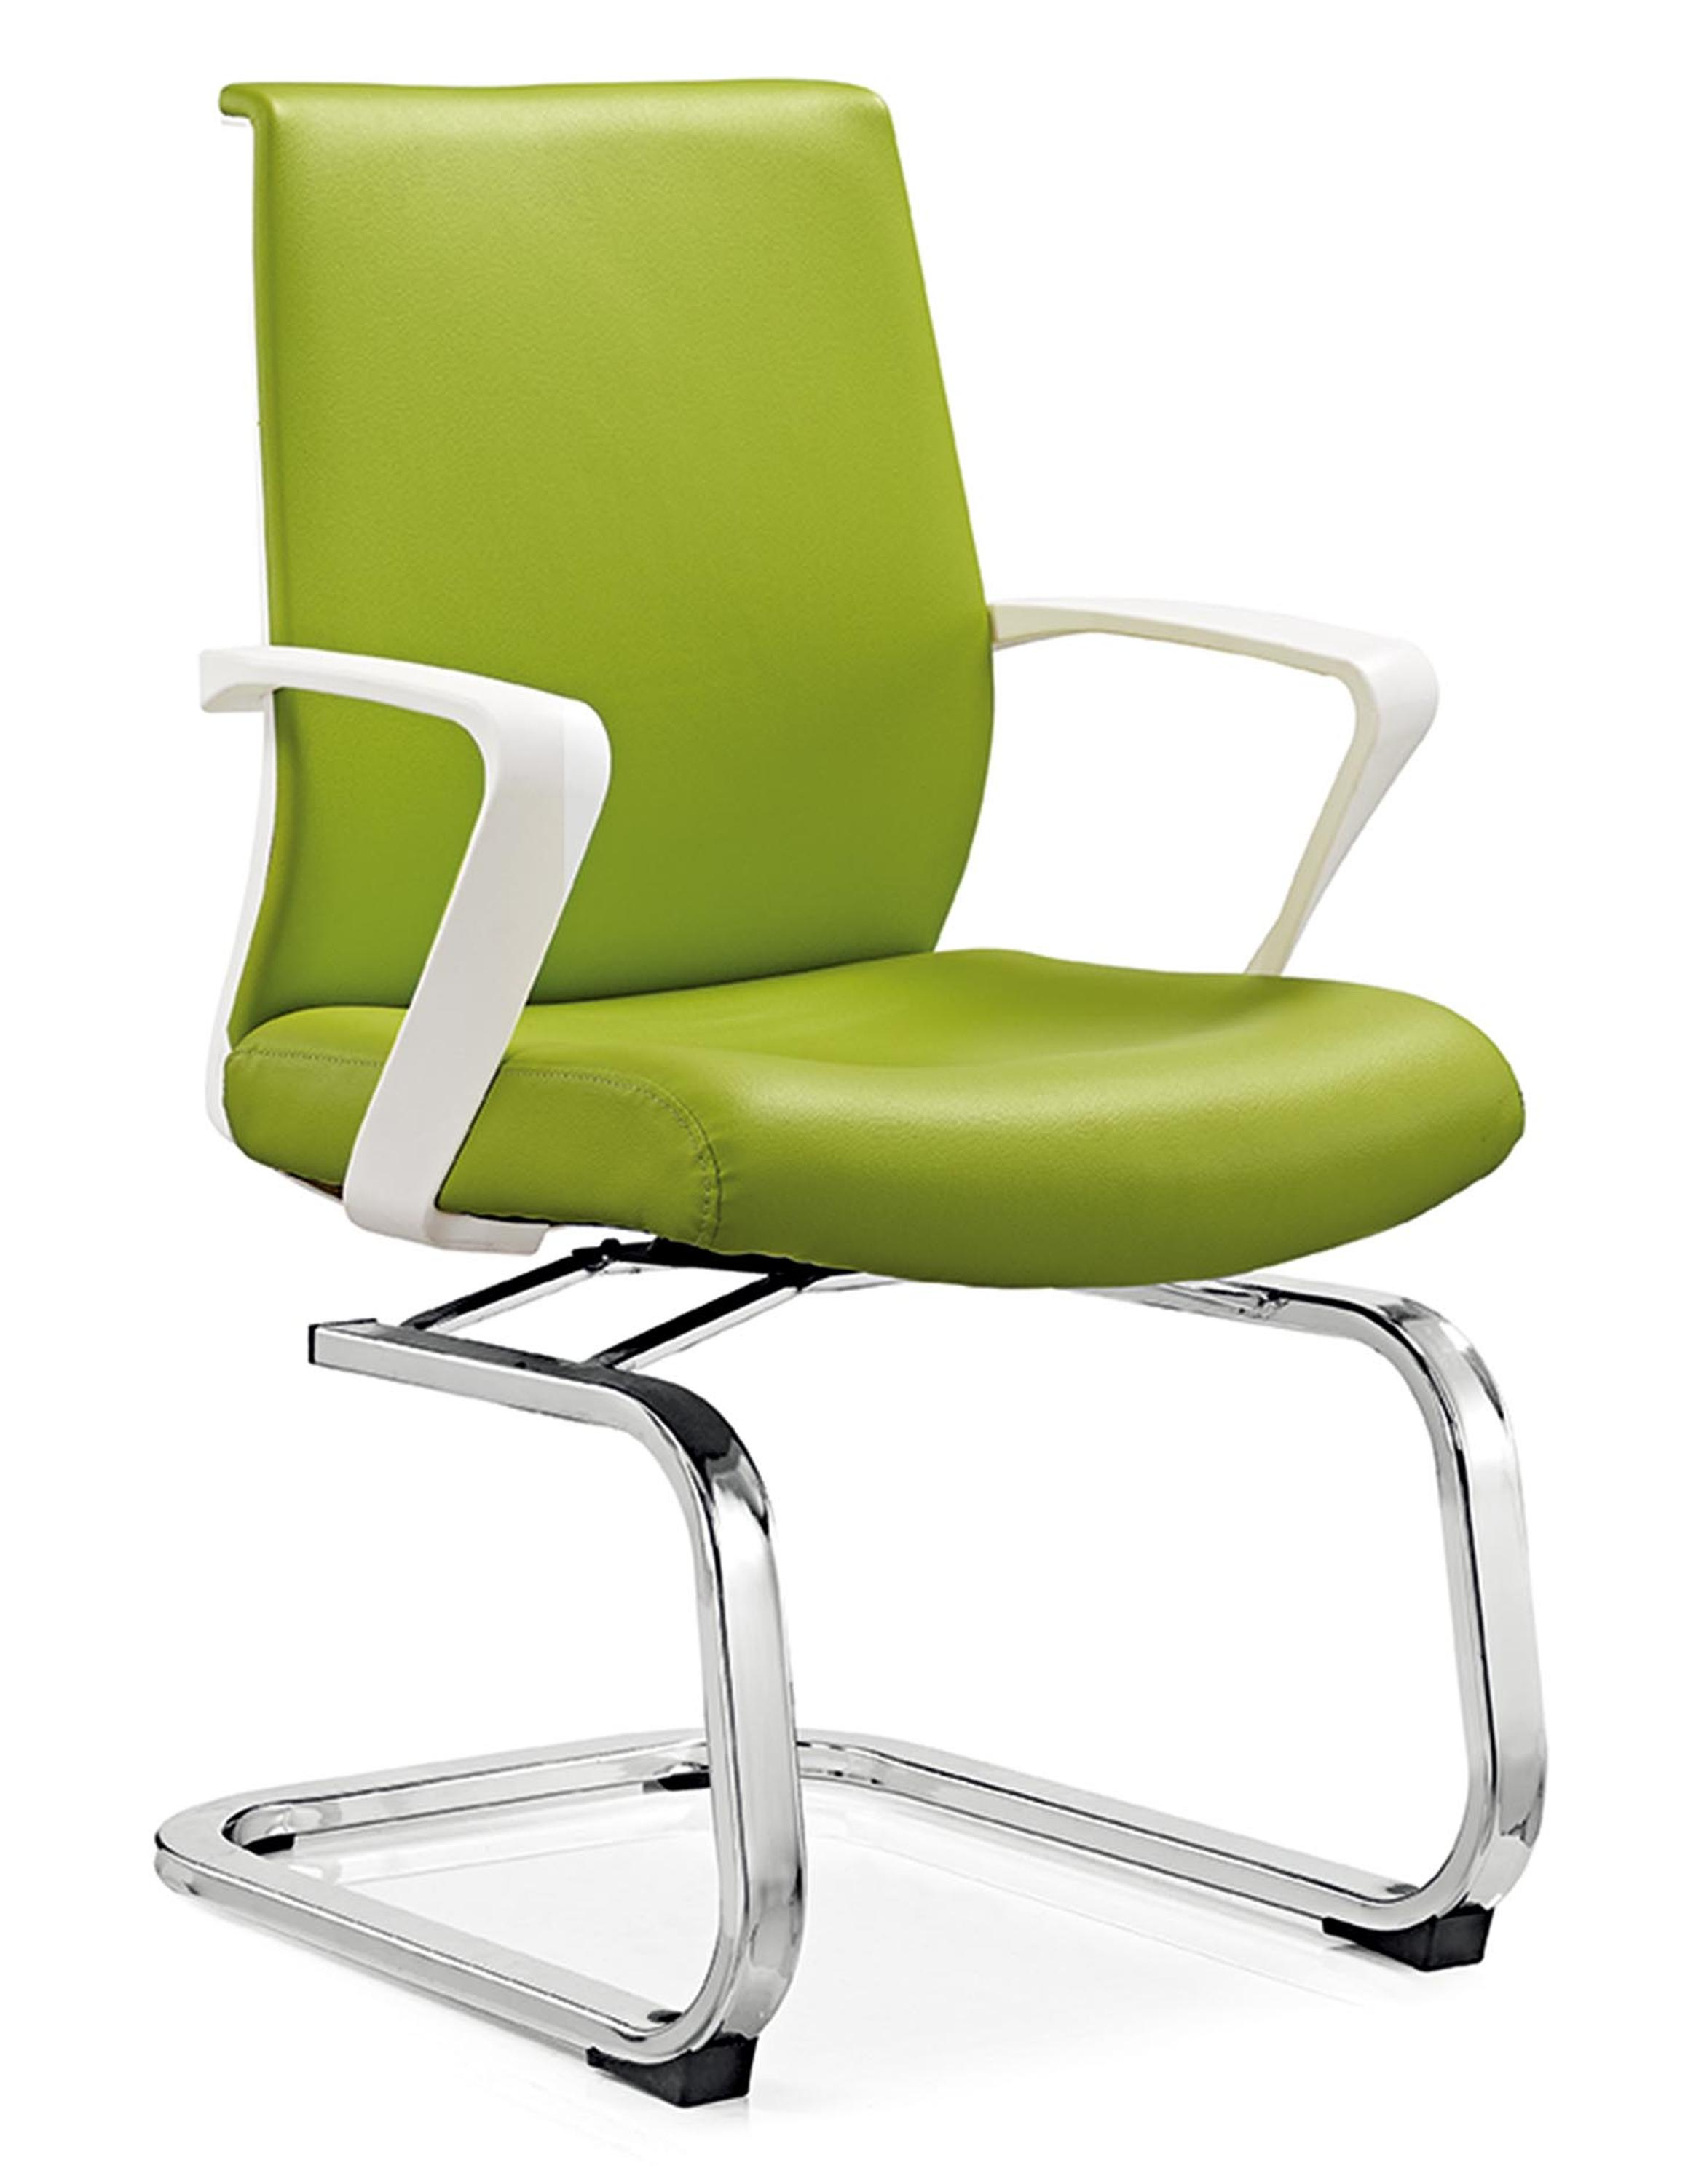 Comfy Non Rolling Office Chair Green Working Chairs Without Wheels